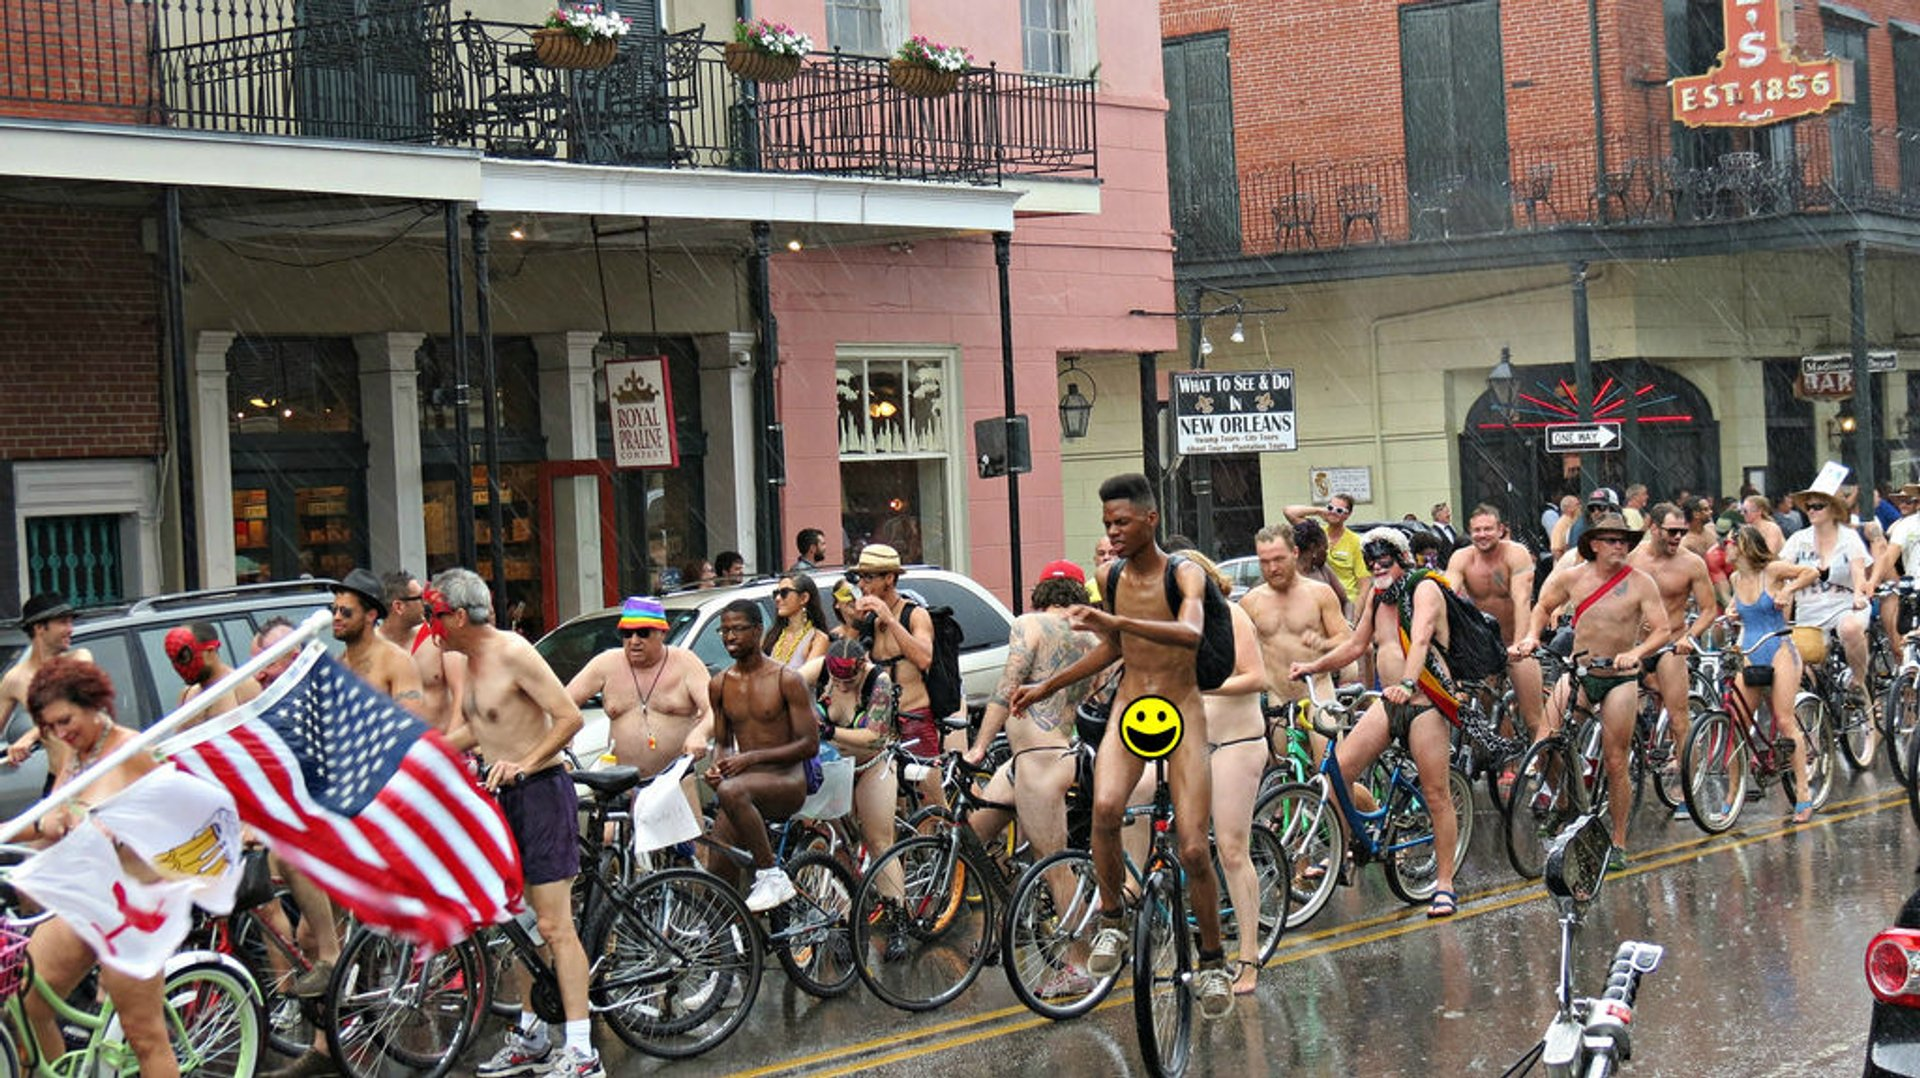 World Naked Bike Ride in New Orleans 2020 - Best Time